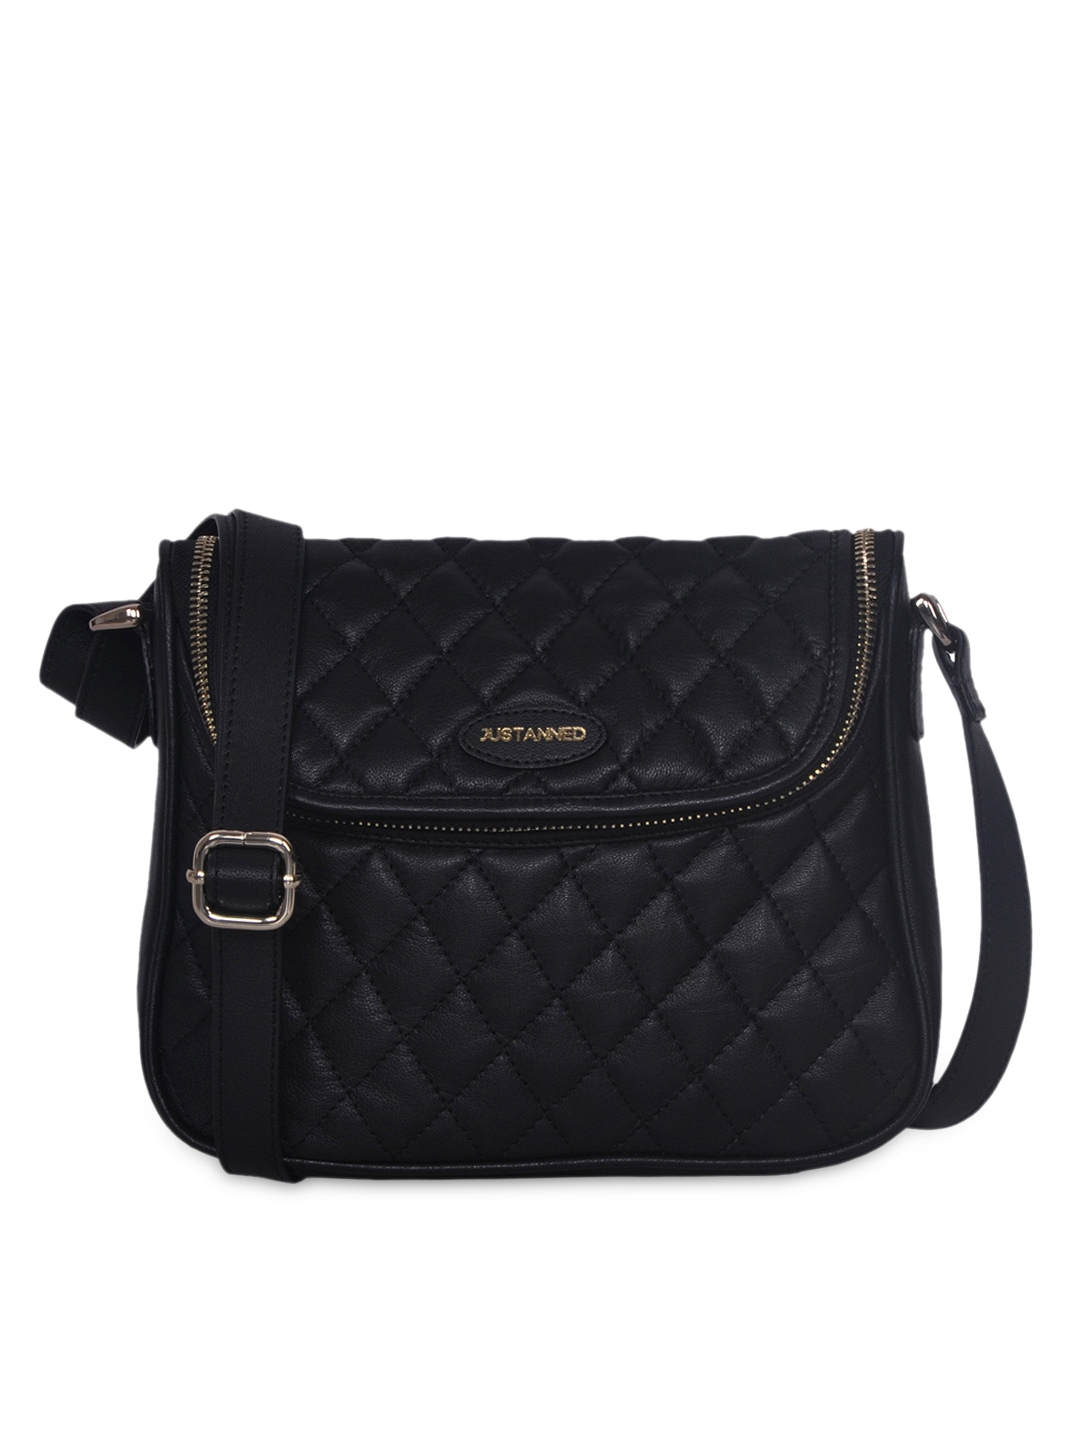 Find great deals on eBay for black leather sling bag. Shop with confidence.